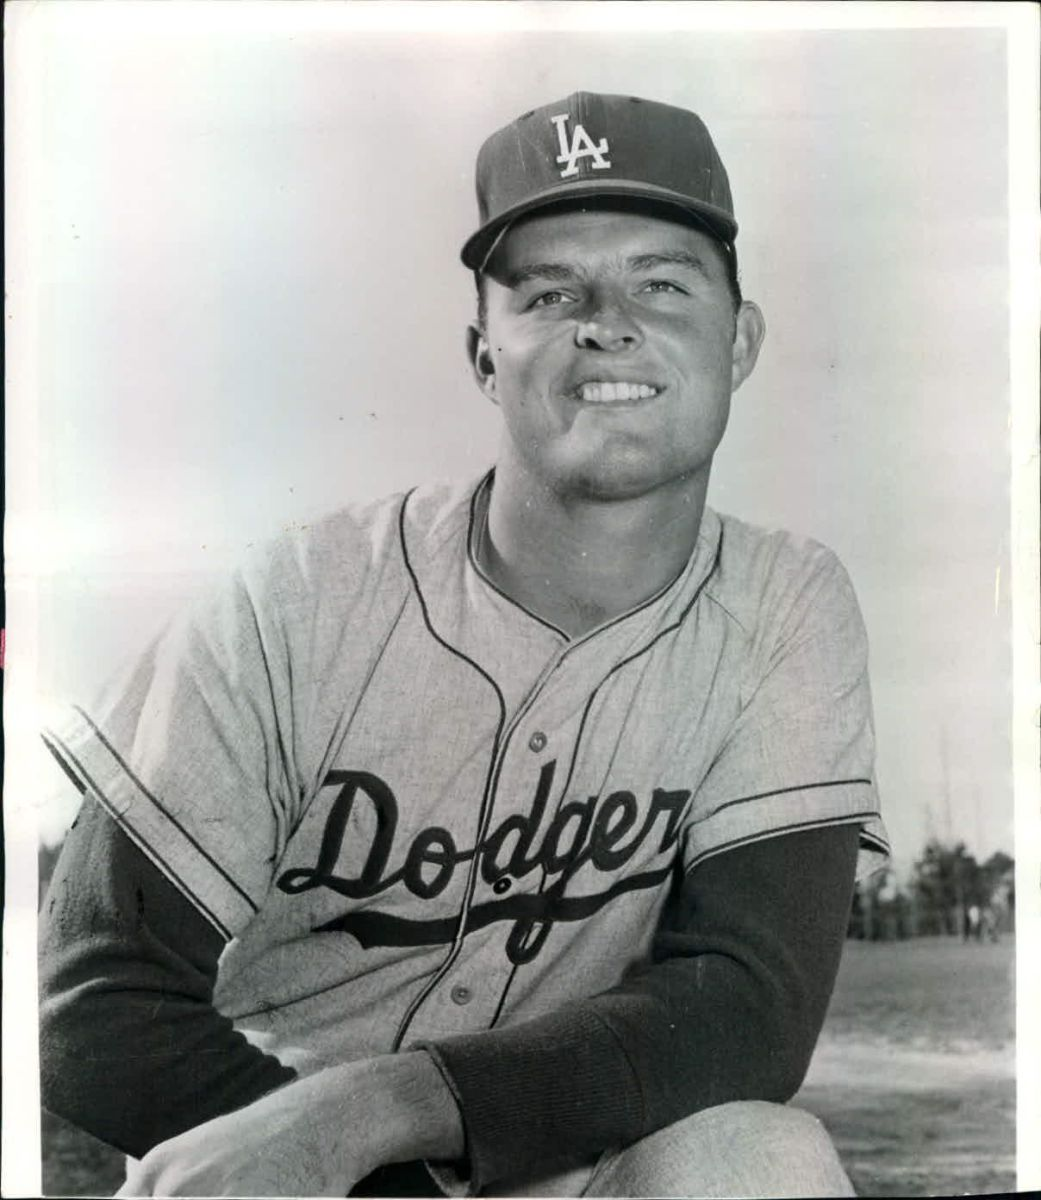 Don Drysdale spent his post-player years in broadcasting, calling games for the Expos, Rangers, Angels, White Sox, NBC, ABC and Dodgers.